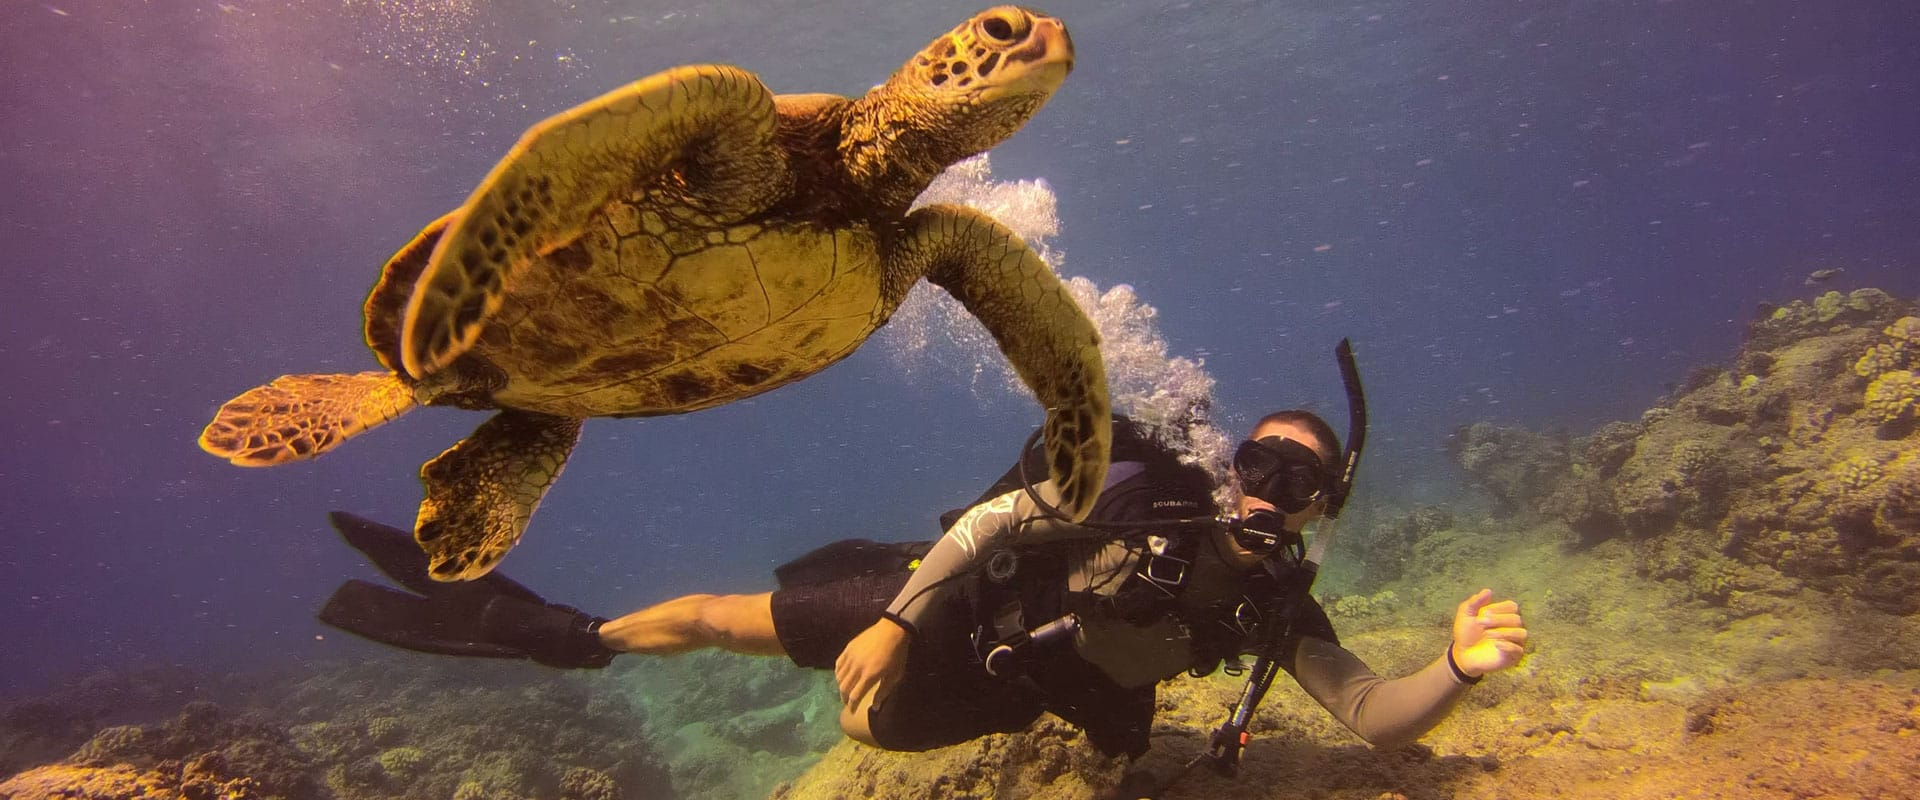 Dive Along Side the Sea Turtles Underwater